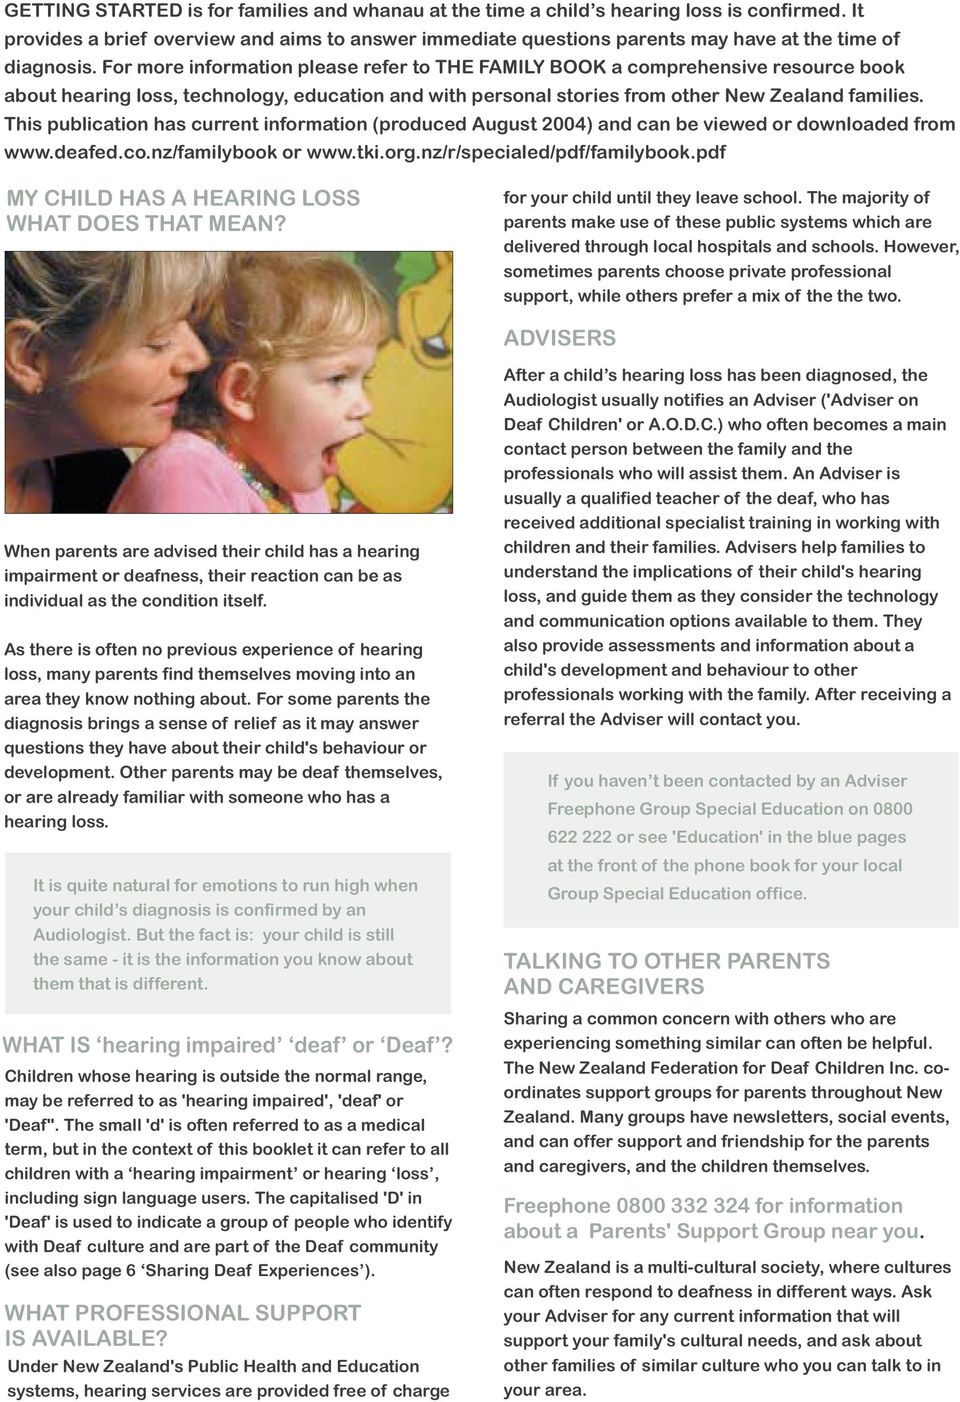 For more information please refer to THE FAMILY BOOK a comprehensive resource book about hearing loss, technology, education and with personal stories from other New Zealand families.